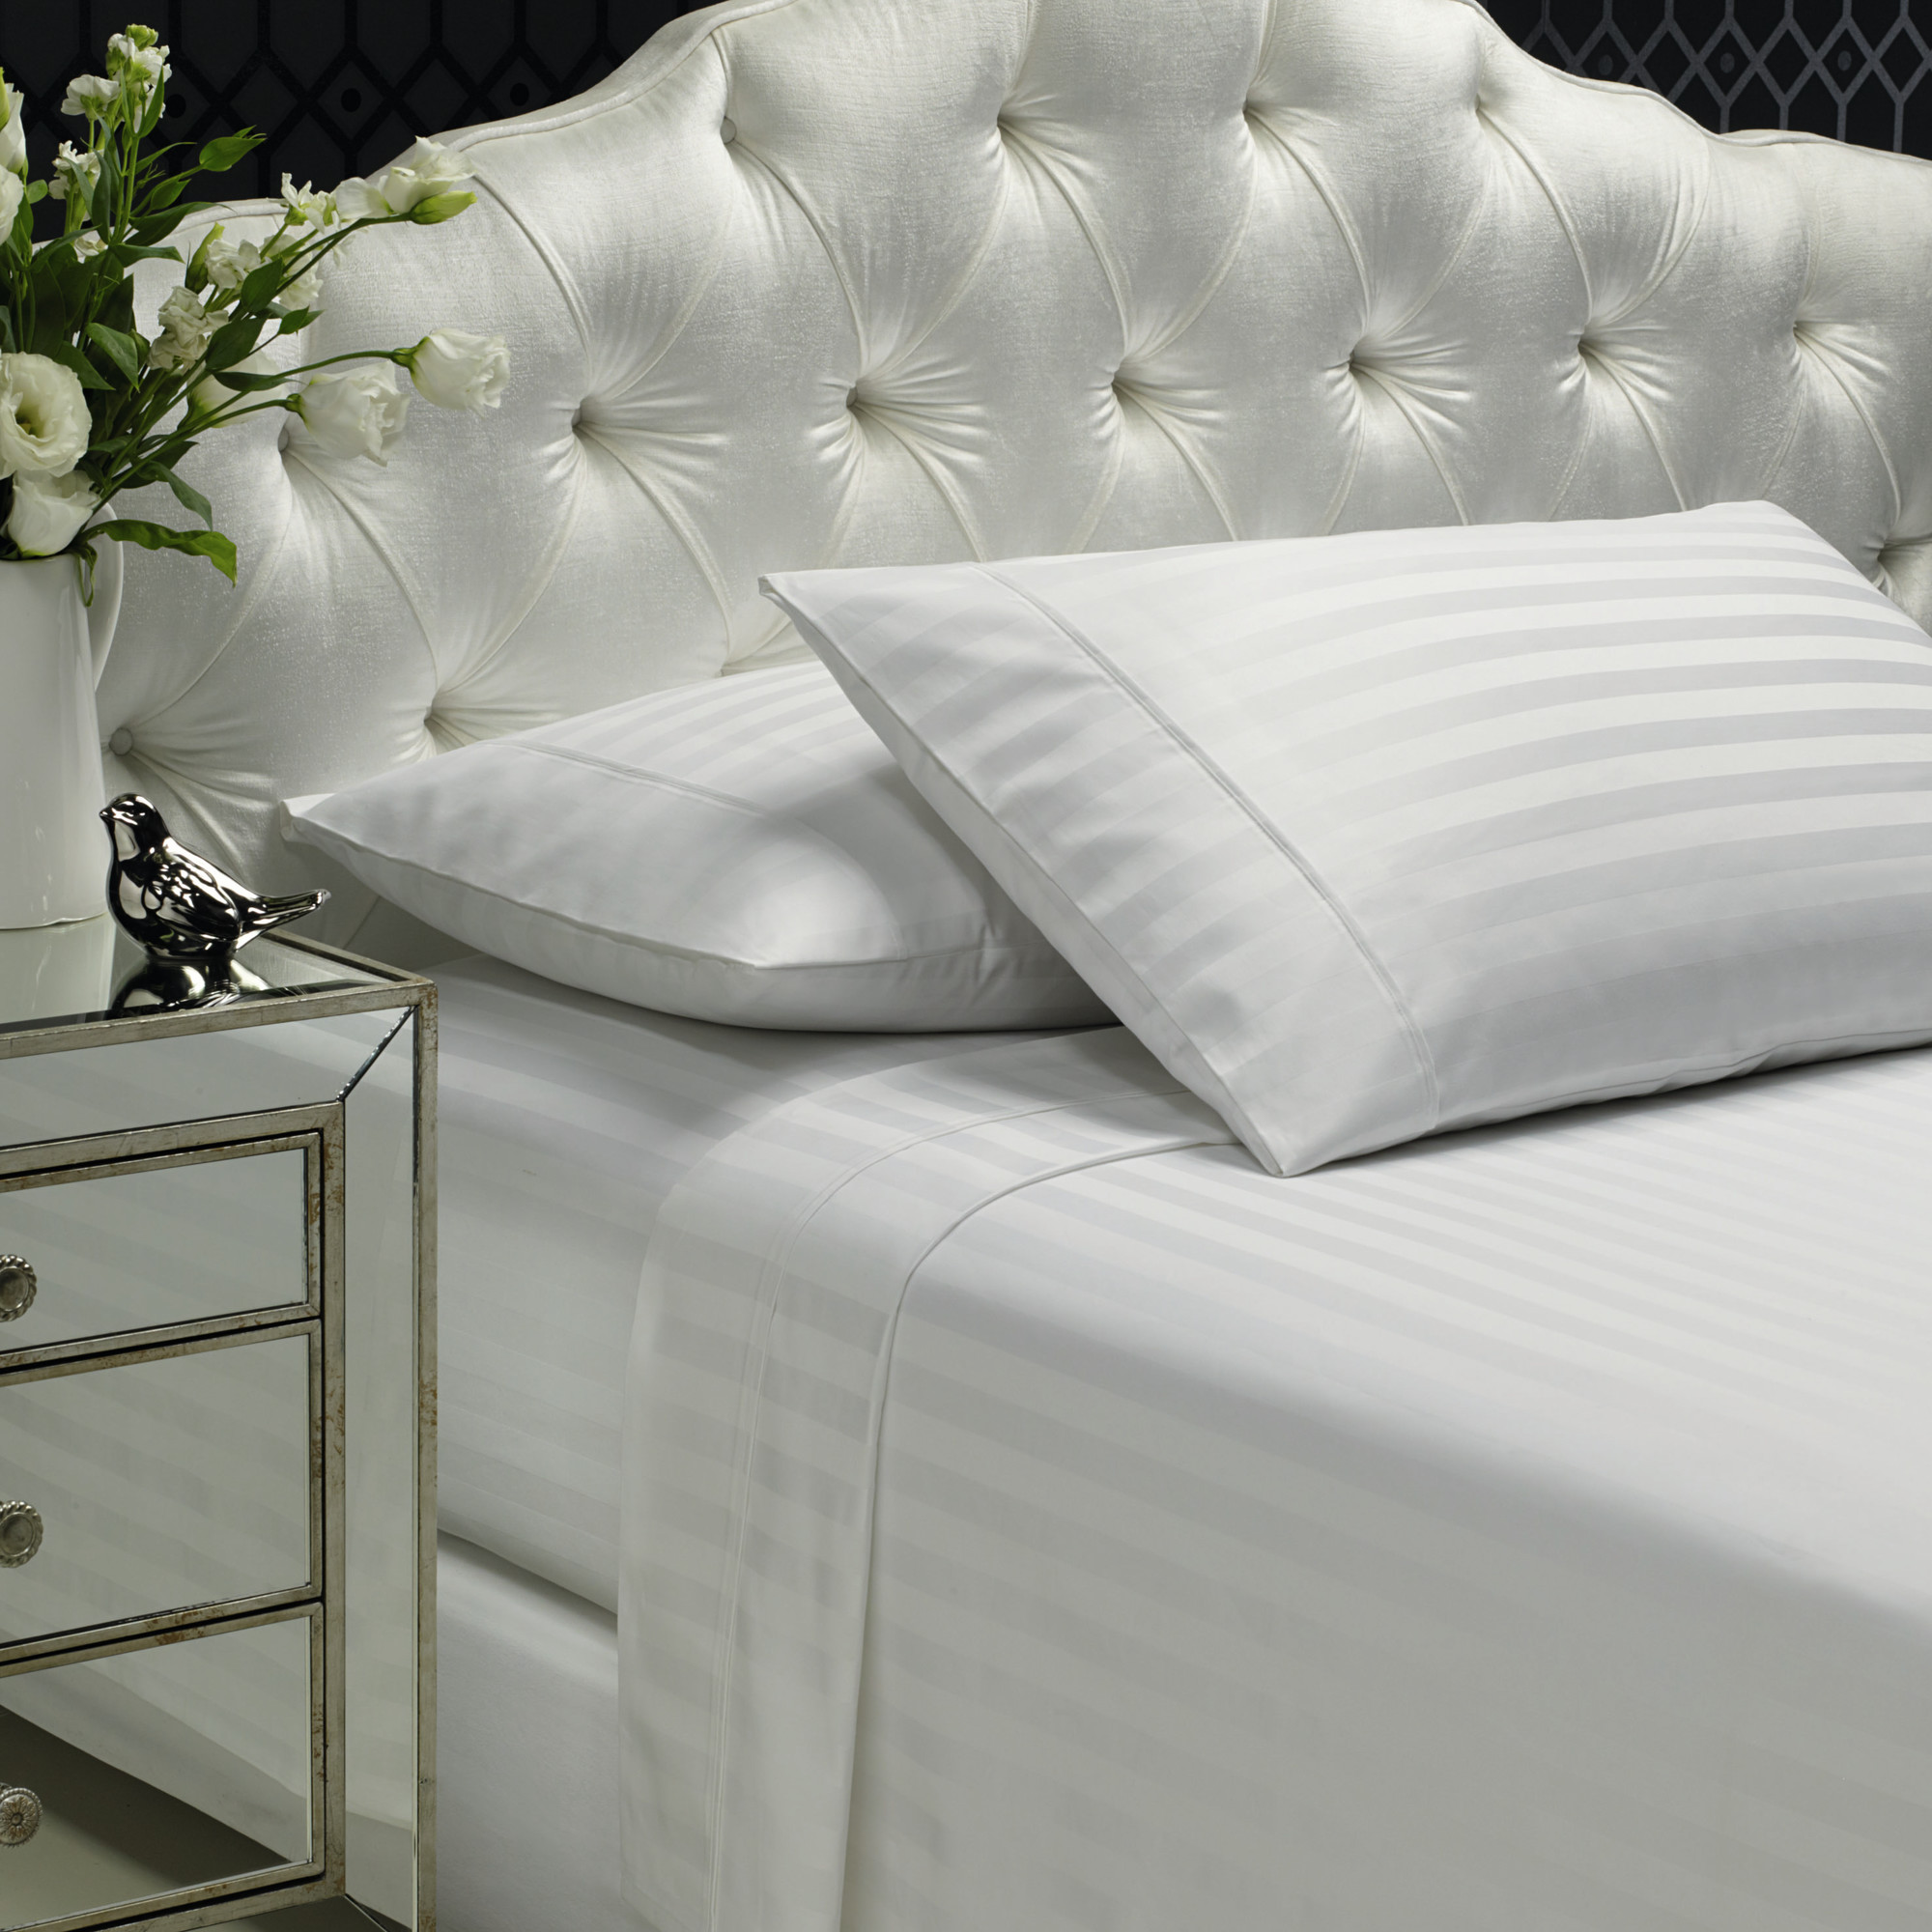 About white 1000tc egyptian cotton complete bedding collection sheet - Sku Miho1017 White Style Co 1000tc Egyptian Cotton Sheet Sets Is Also Sometimes Listed Under The Following Manufacturer Numbers 0203075 0203105